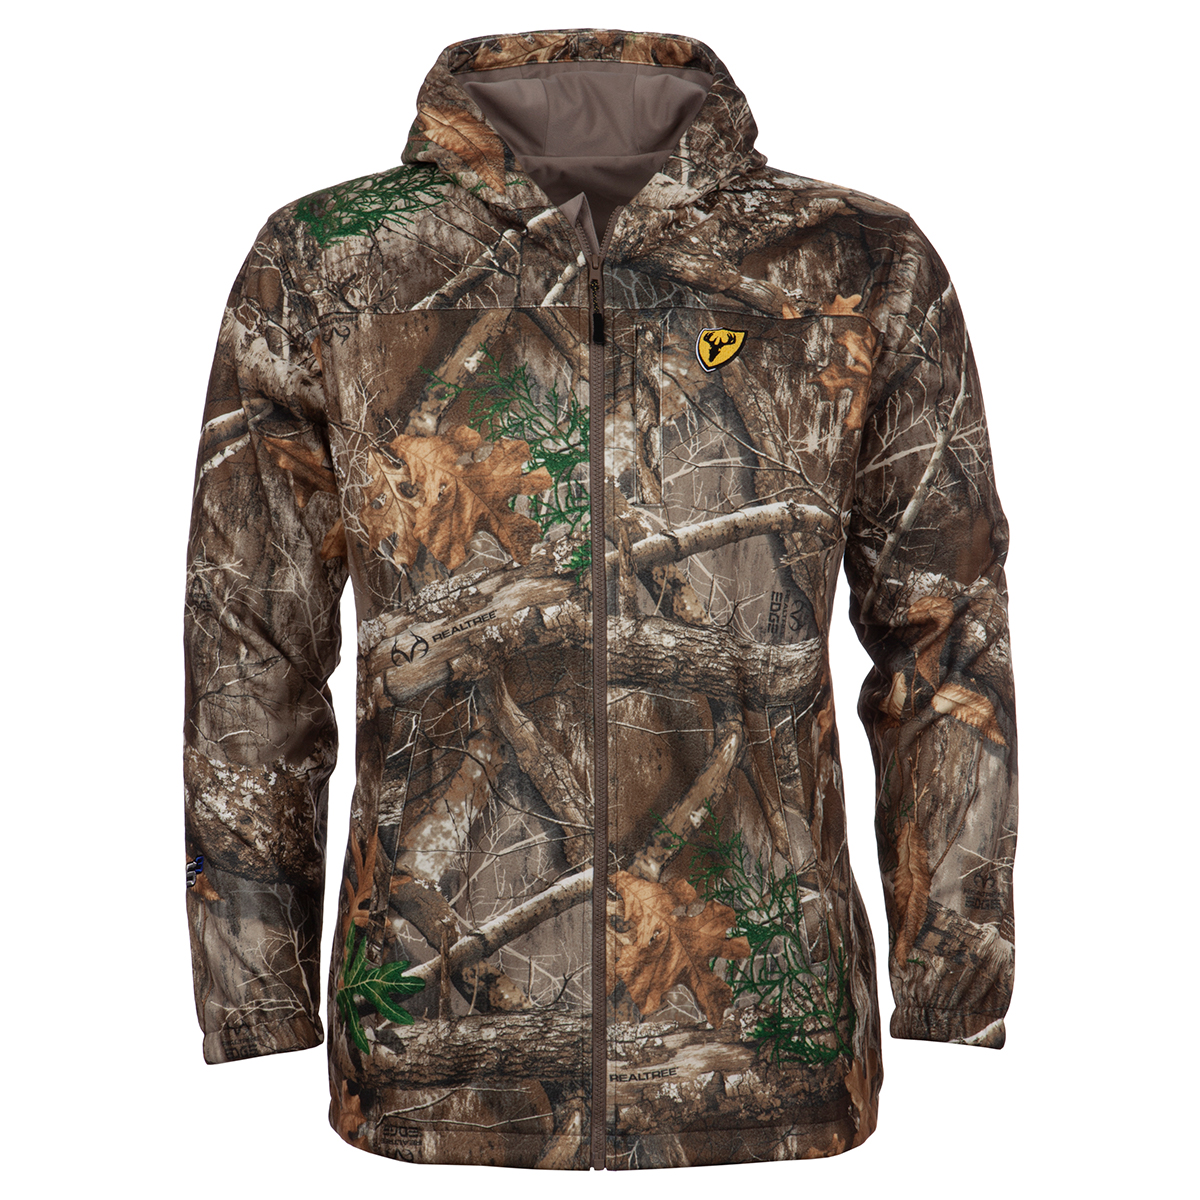 Scent-Blocker-Wooltex-Windproof-Insulated-Parka-Big-Tall-Hunt-BigCamo-Front